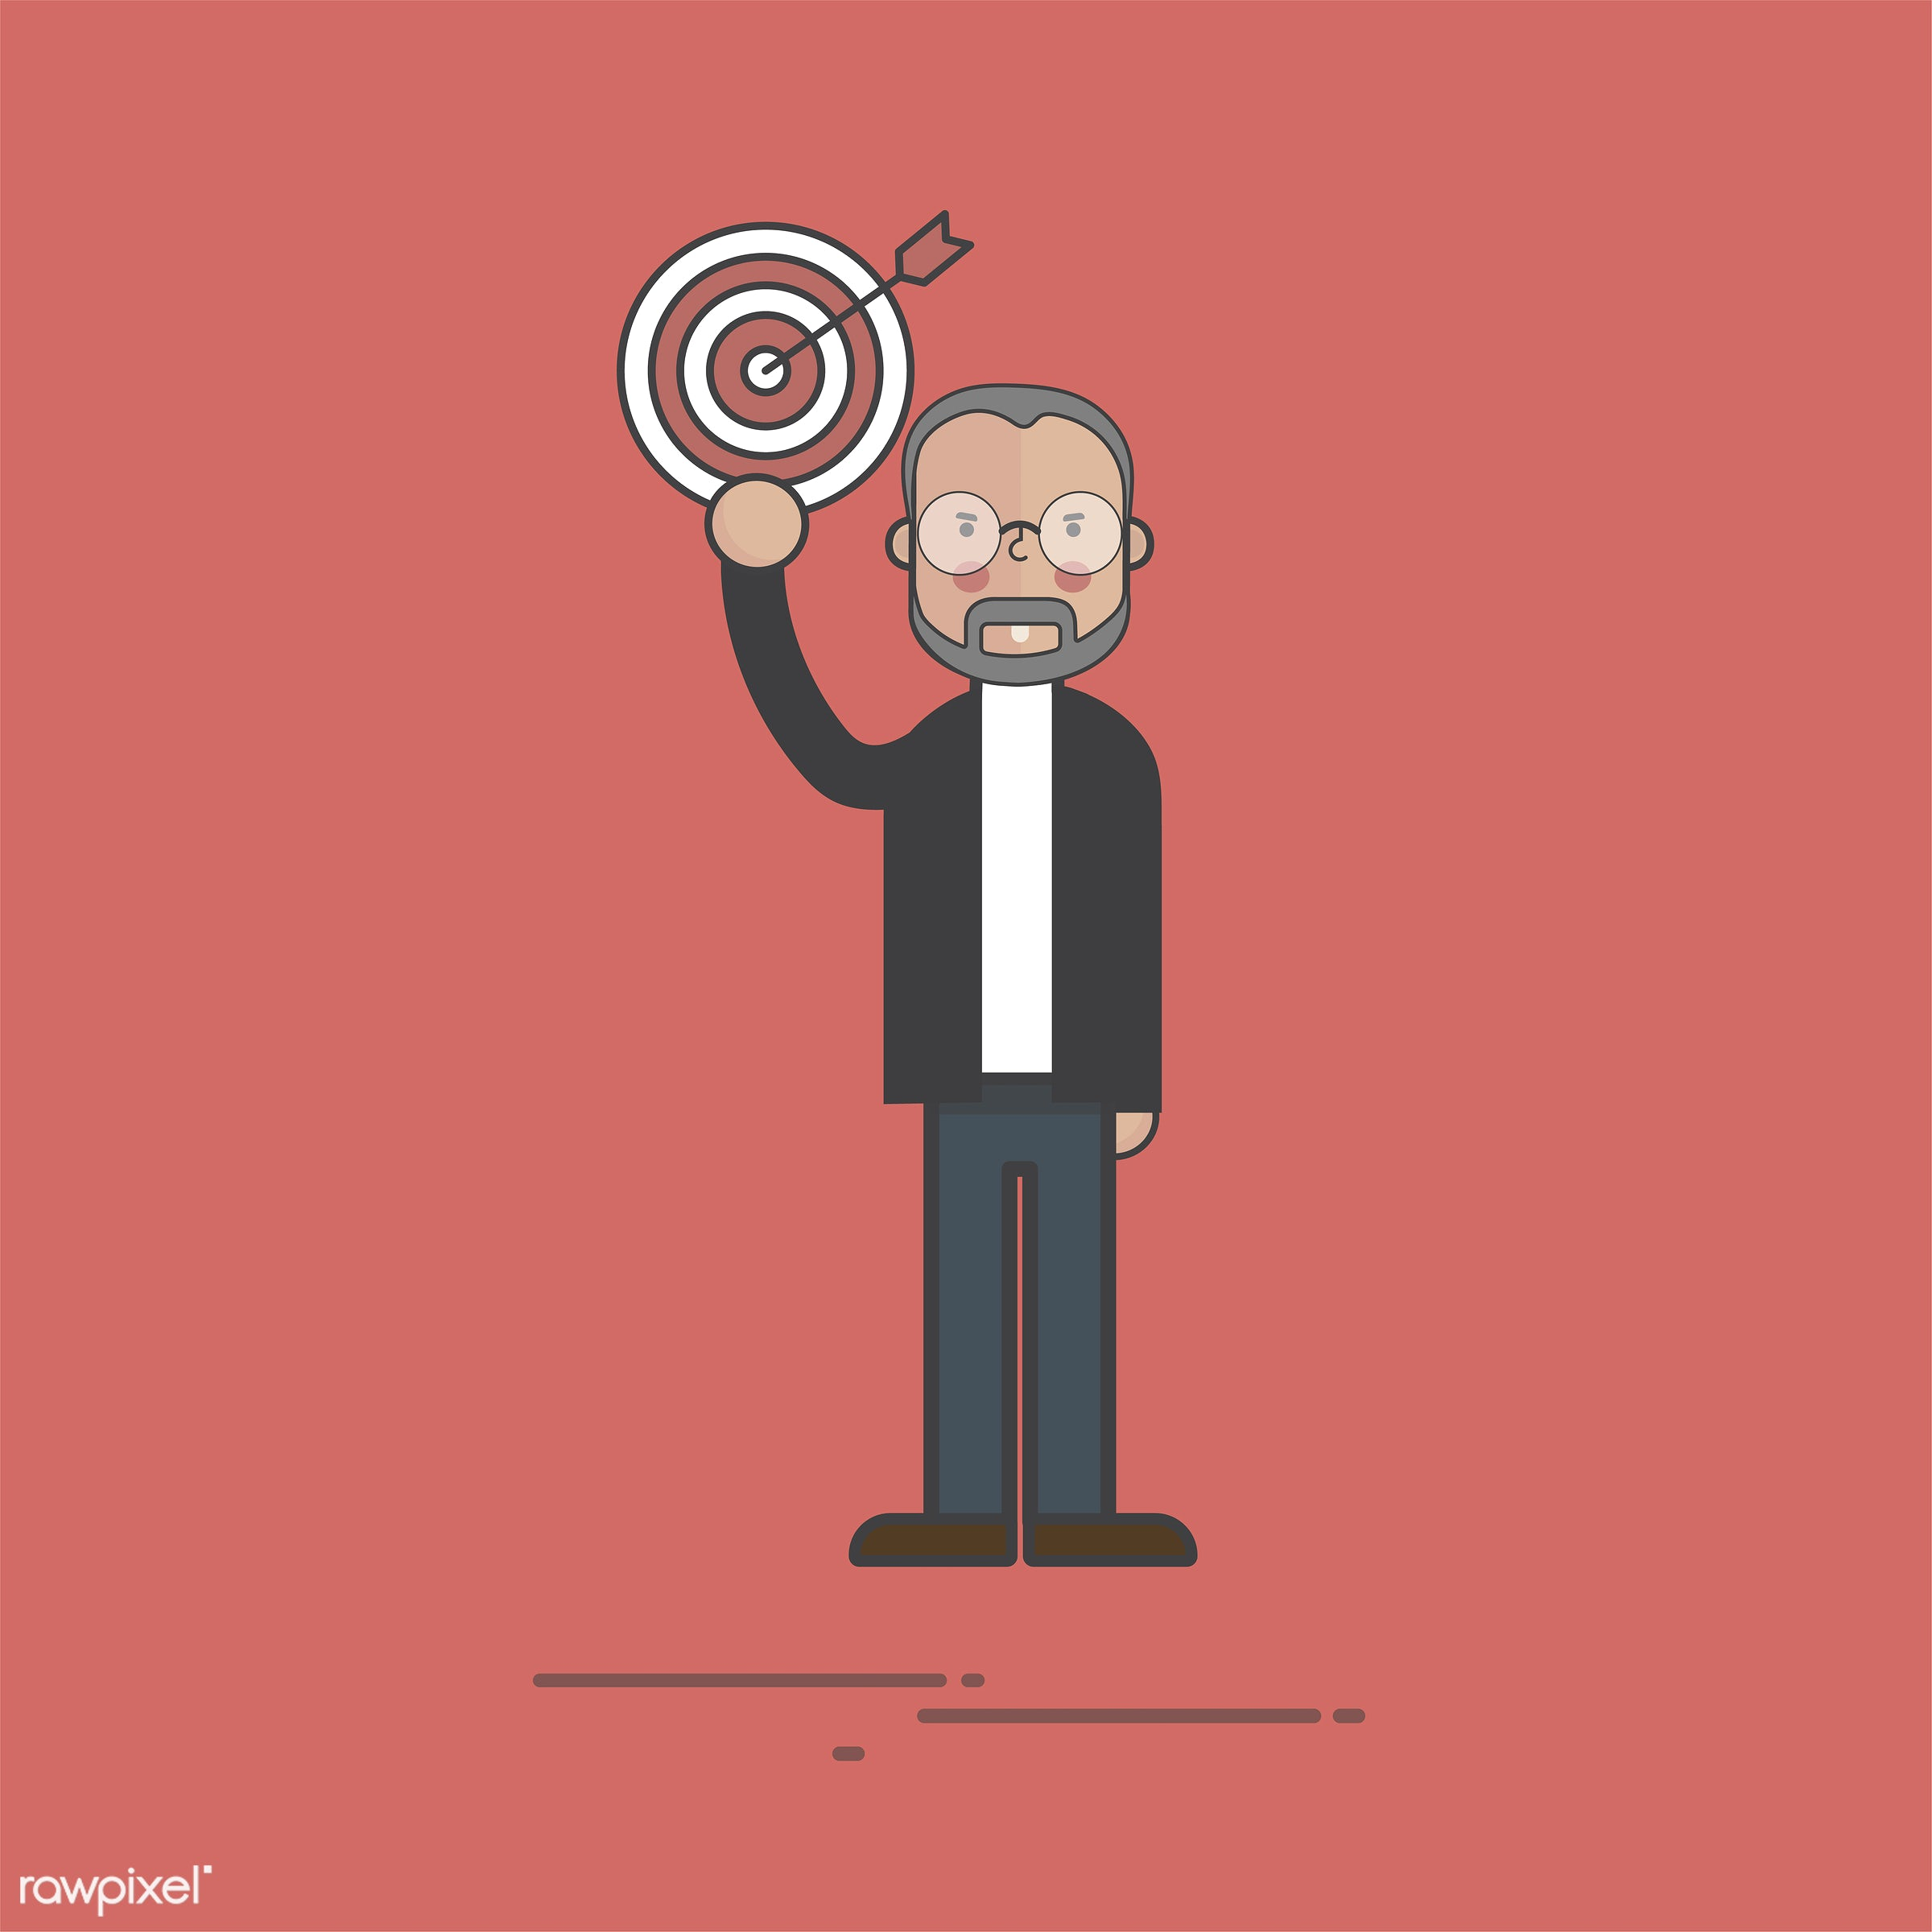 Illustration of people avatar - business, cartoon, character, dartboard, drawing, flat, goals, graphic, icon, illustration,...